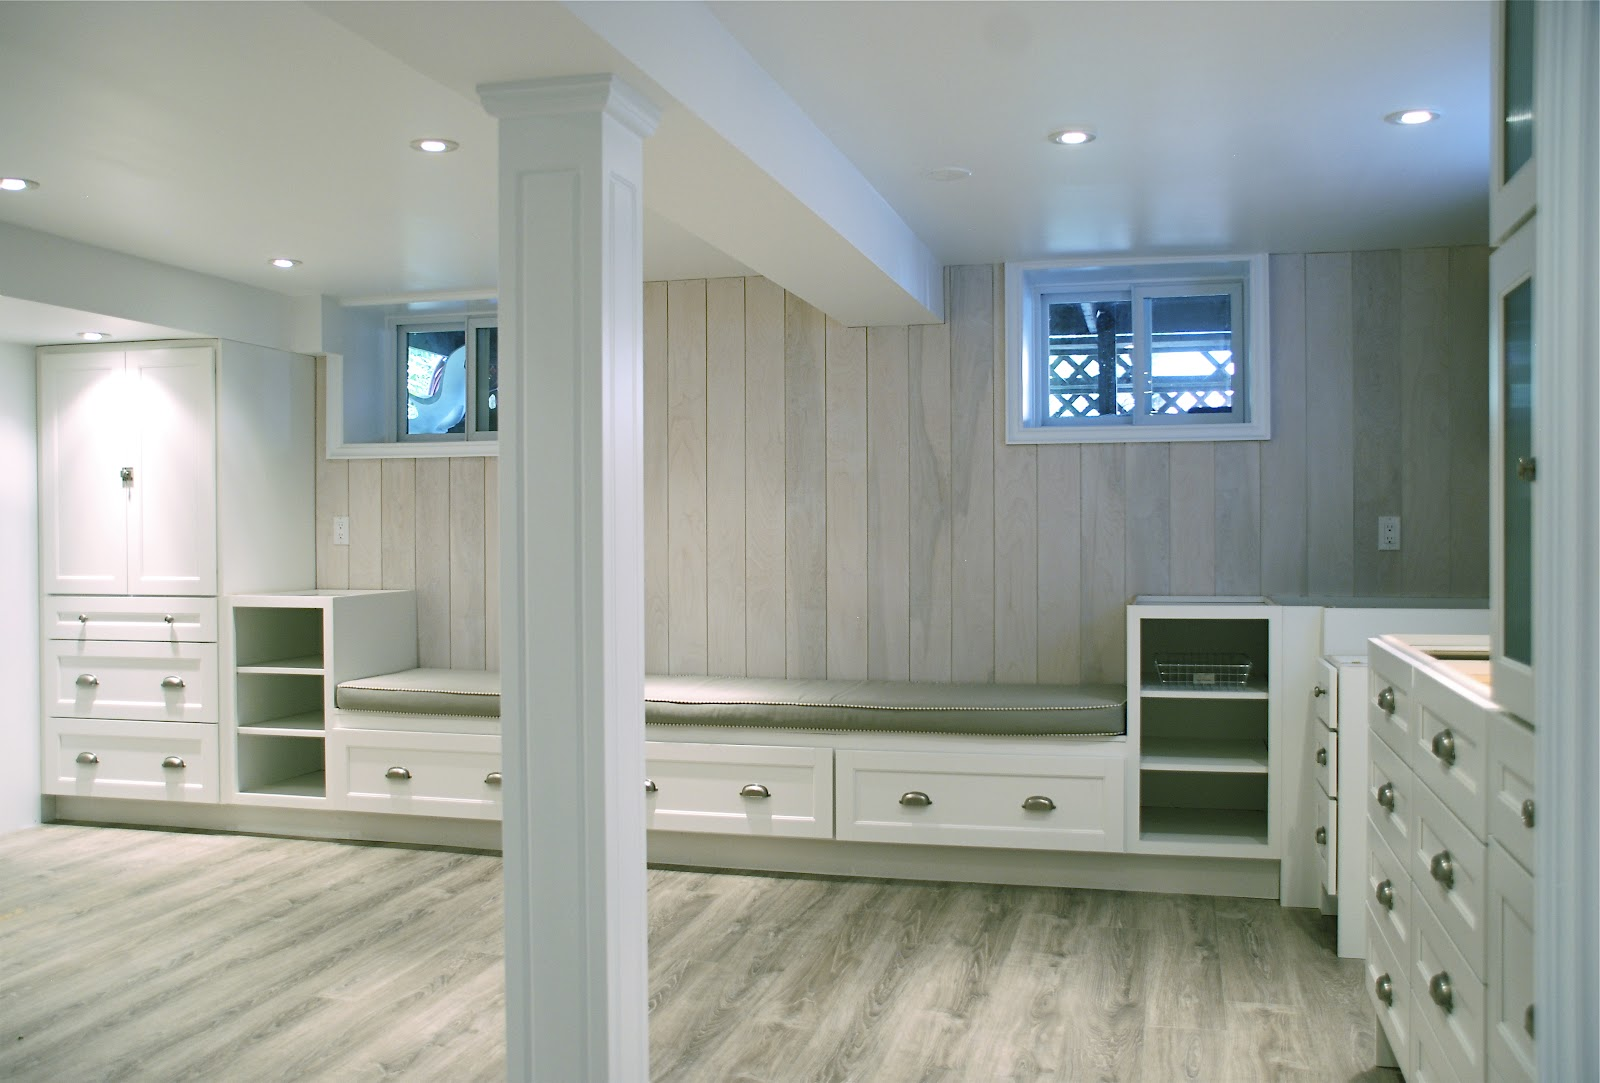 Appealing Wooden Flooring for Basement with Built in Cabinets and Seating